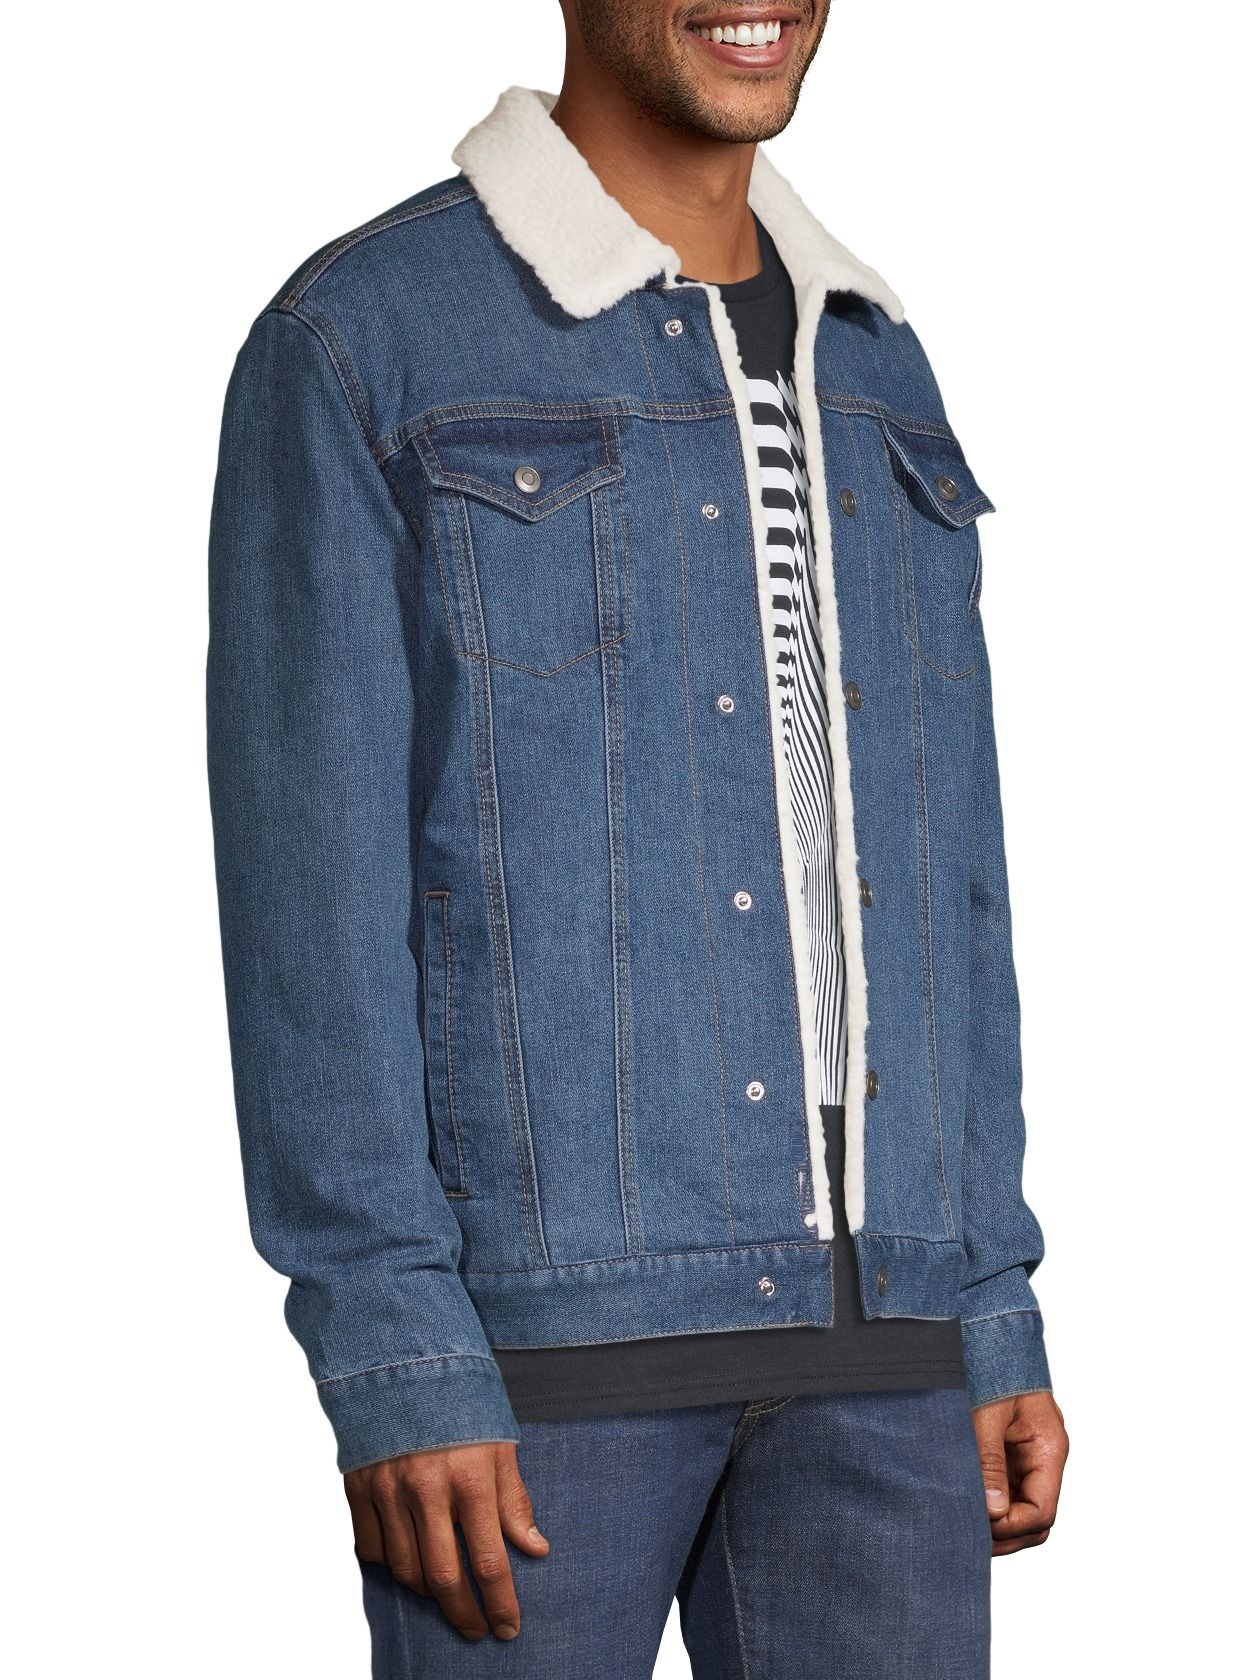 George George Men S And Big Men S Sherpa Lined Denim Jacket Up To Size 5xl Walmart Com Sherpa Lined Denim Jacket Denim Jacket Jackets [ 1680 x 1260 Pixel ]